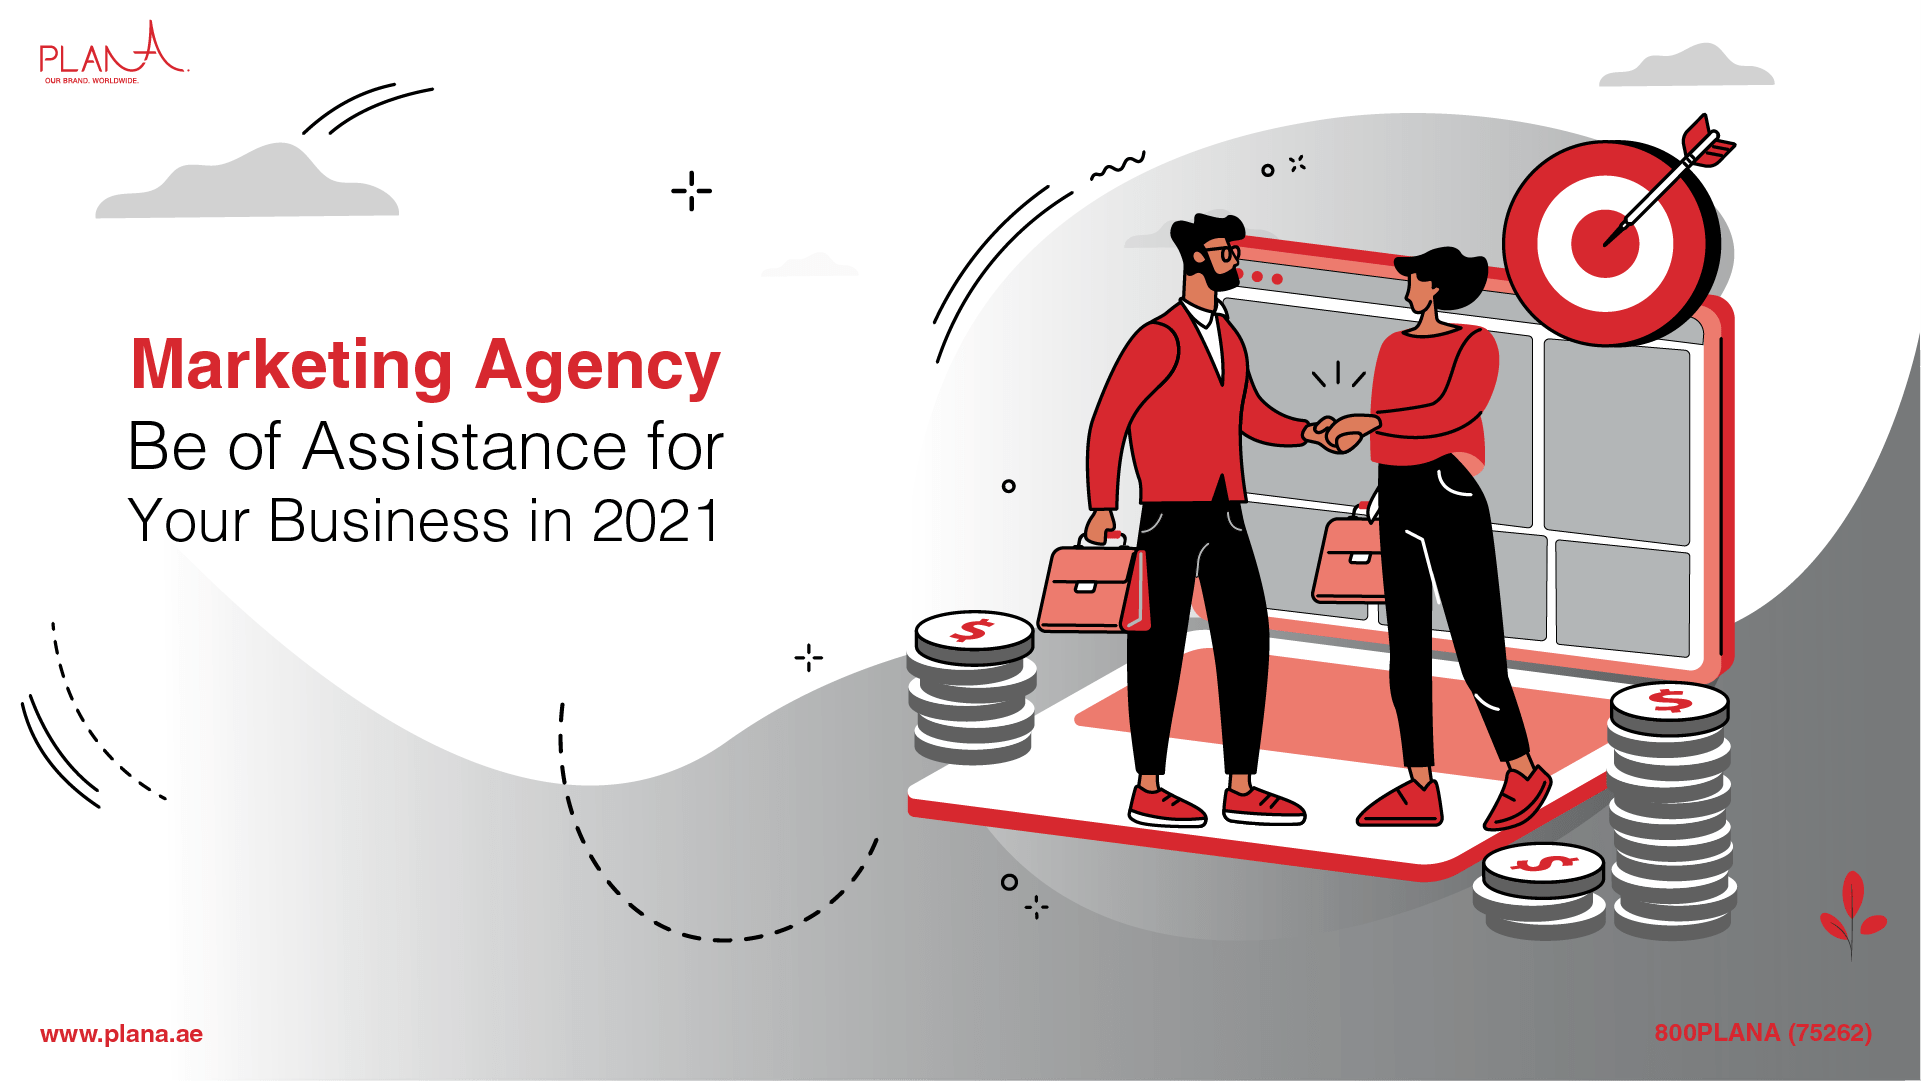 How Can a Marketing Agency Be of Assistance for Your Business in 2021?